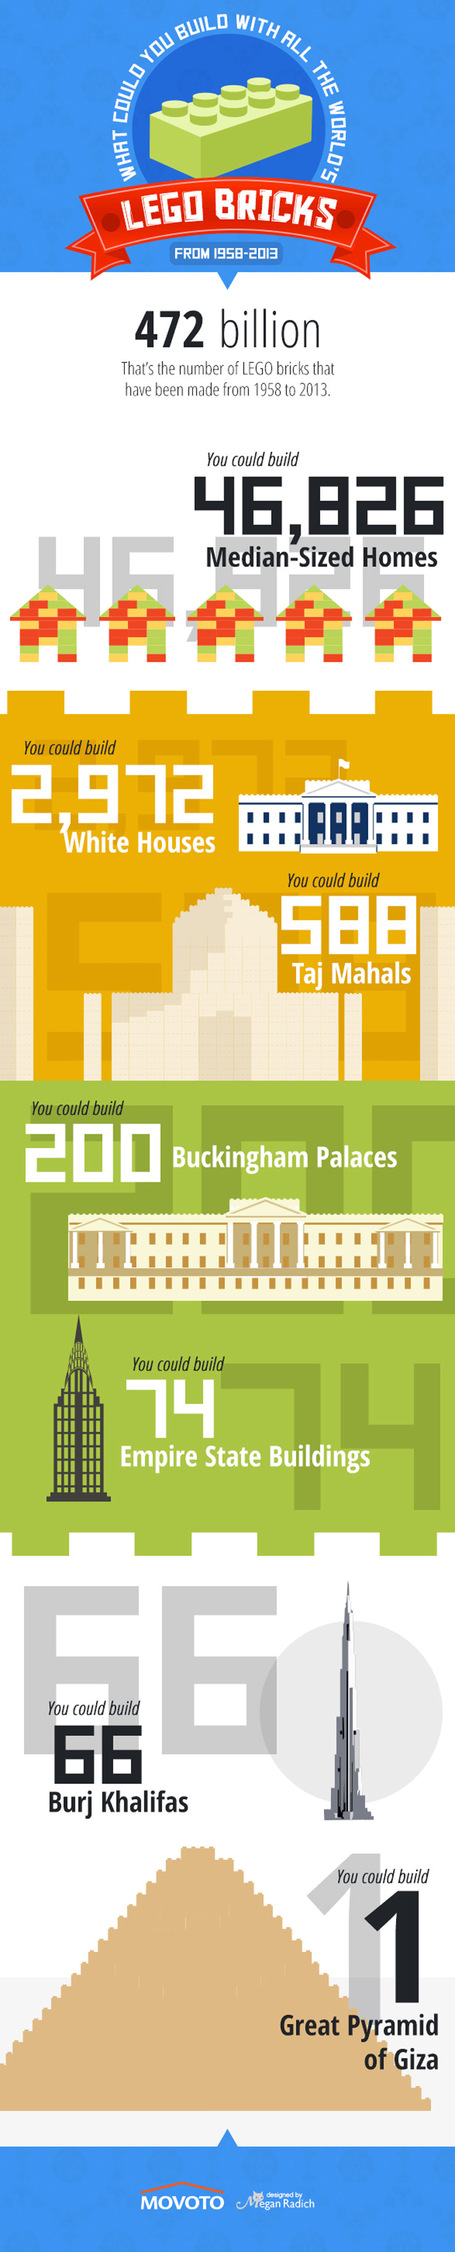 What All the World's LEGO Bricks Could Build – infographic /@BerriePelser | WordPress Google SEO and Social Media | Scoop.it